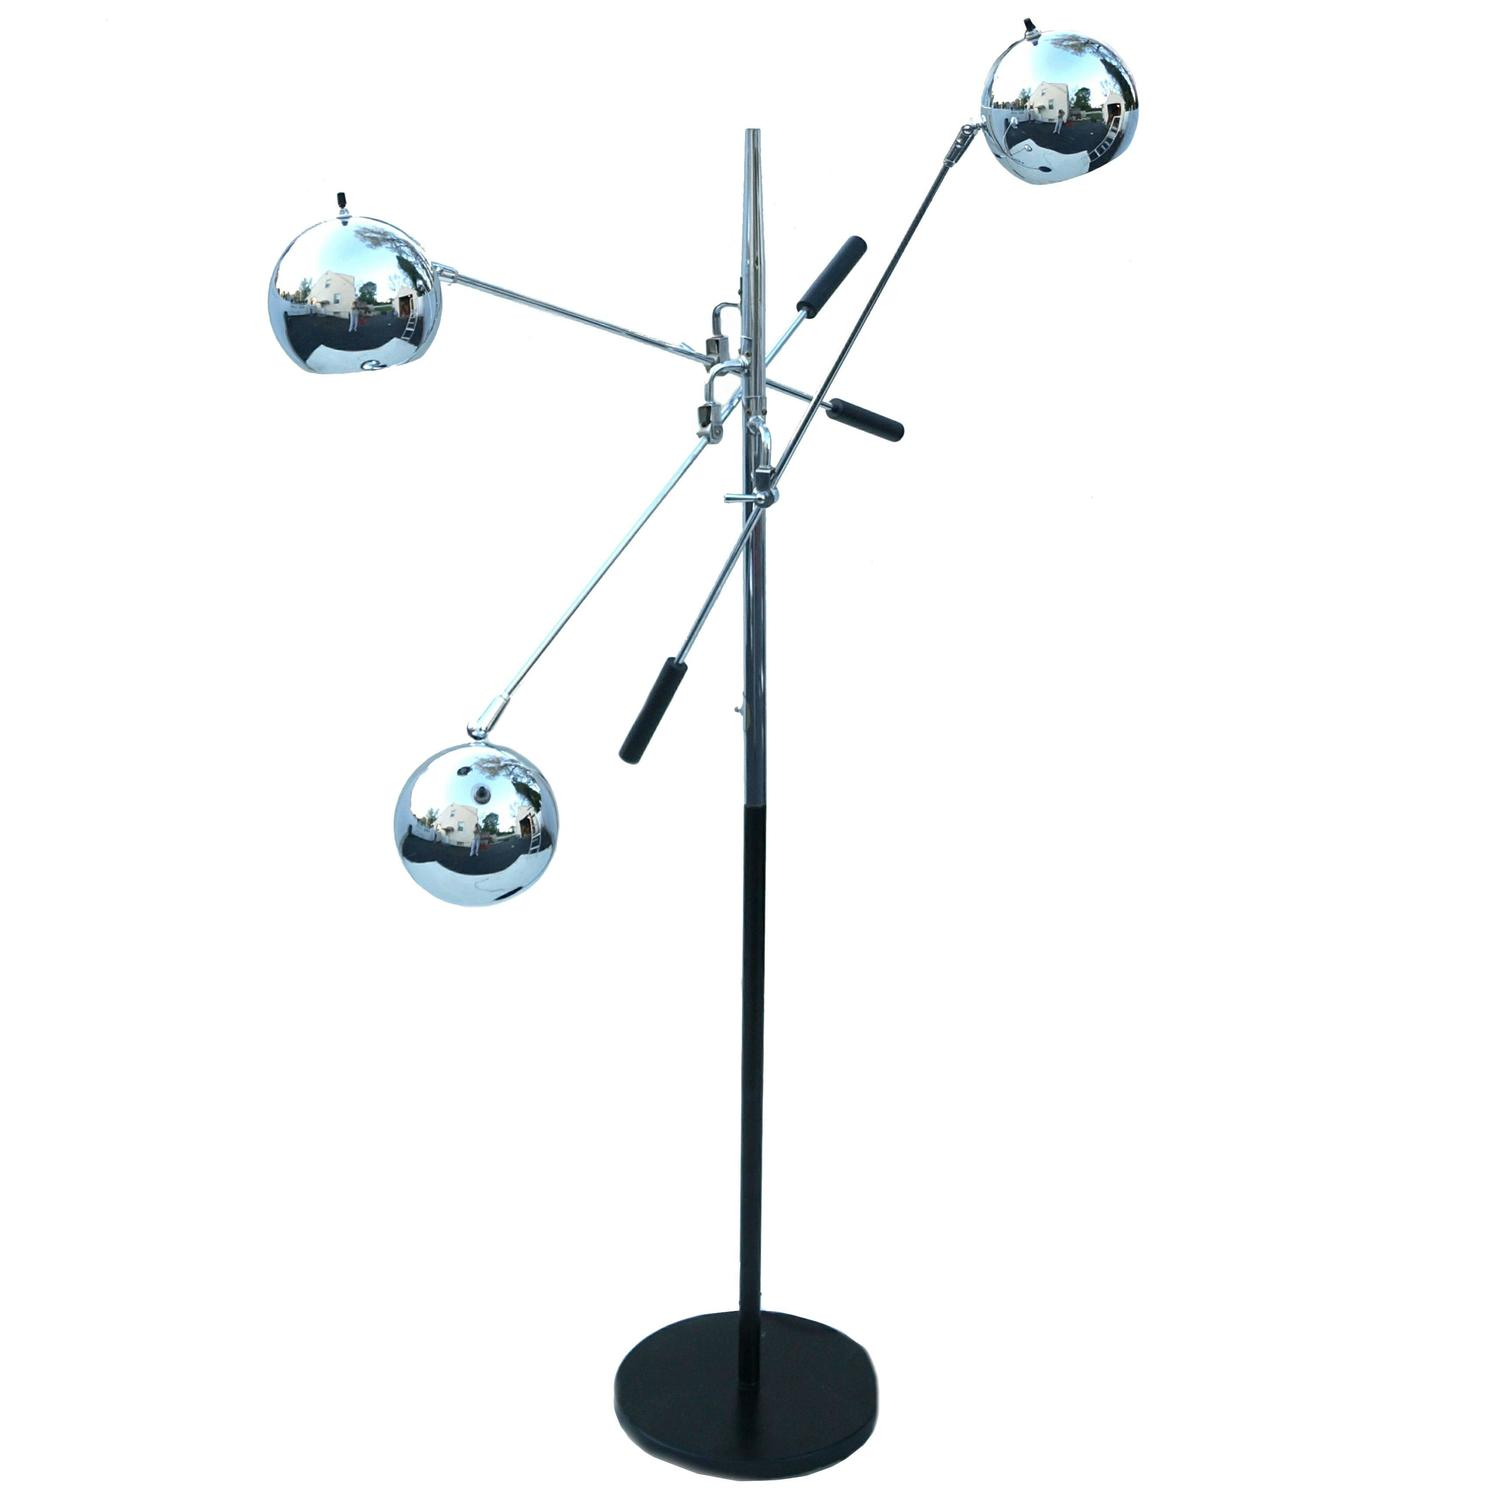 Robert sonneman triennale atomic orbiter chrome floor lamp at 1stdibs aloadofball Images